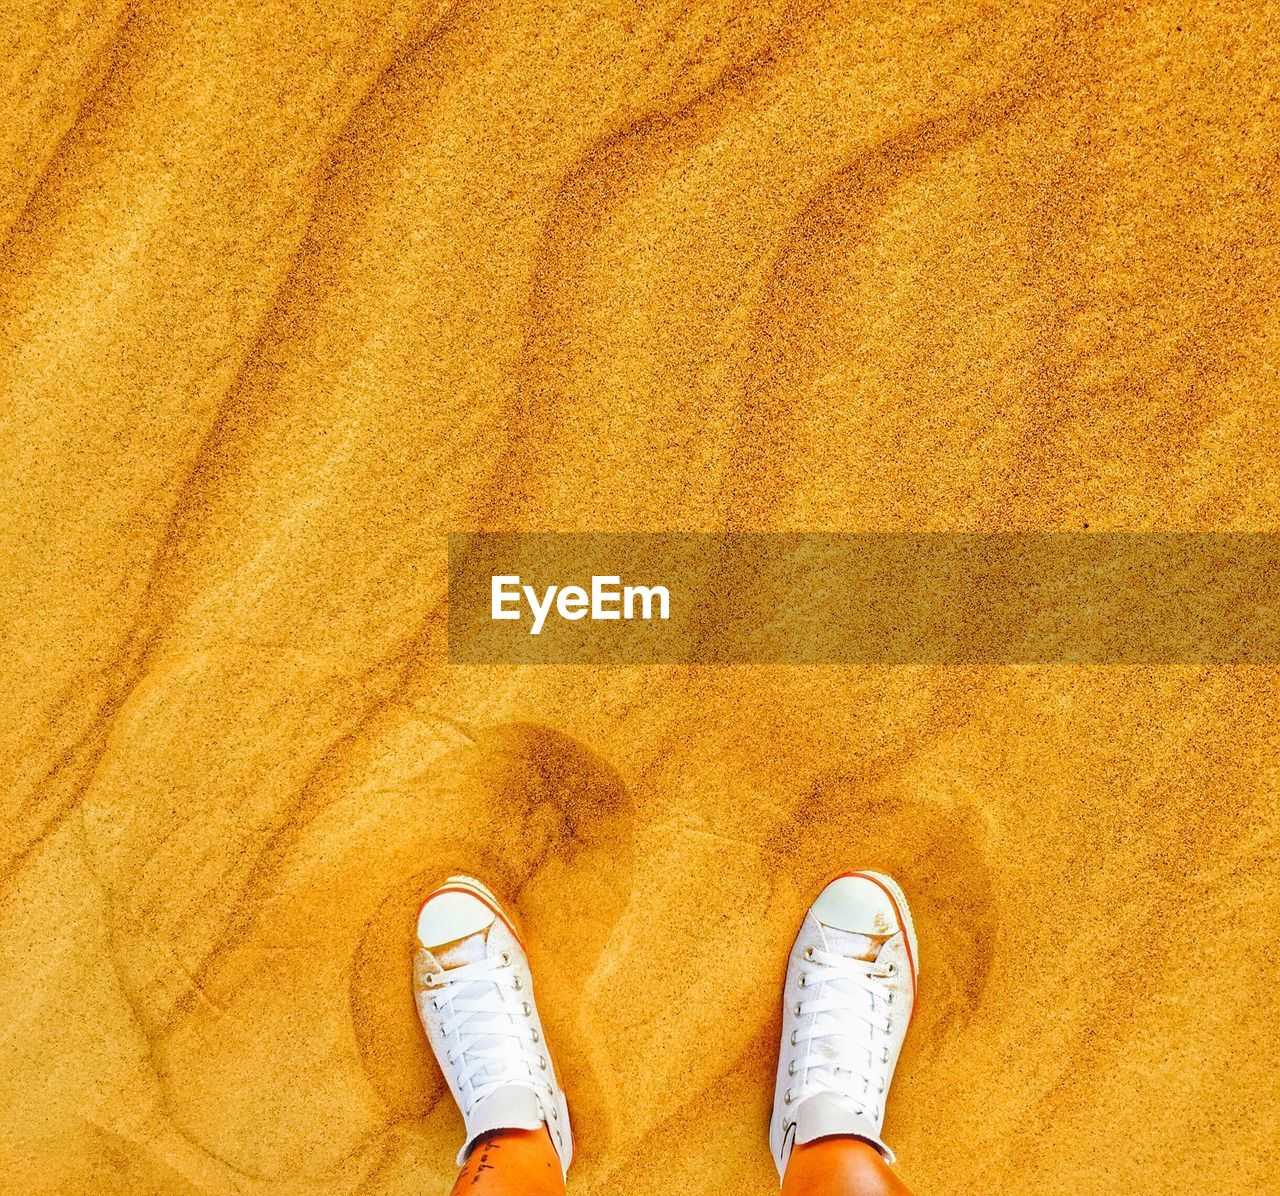 Low Section Of Person Standing On Sand In Desert